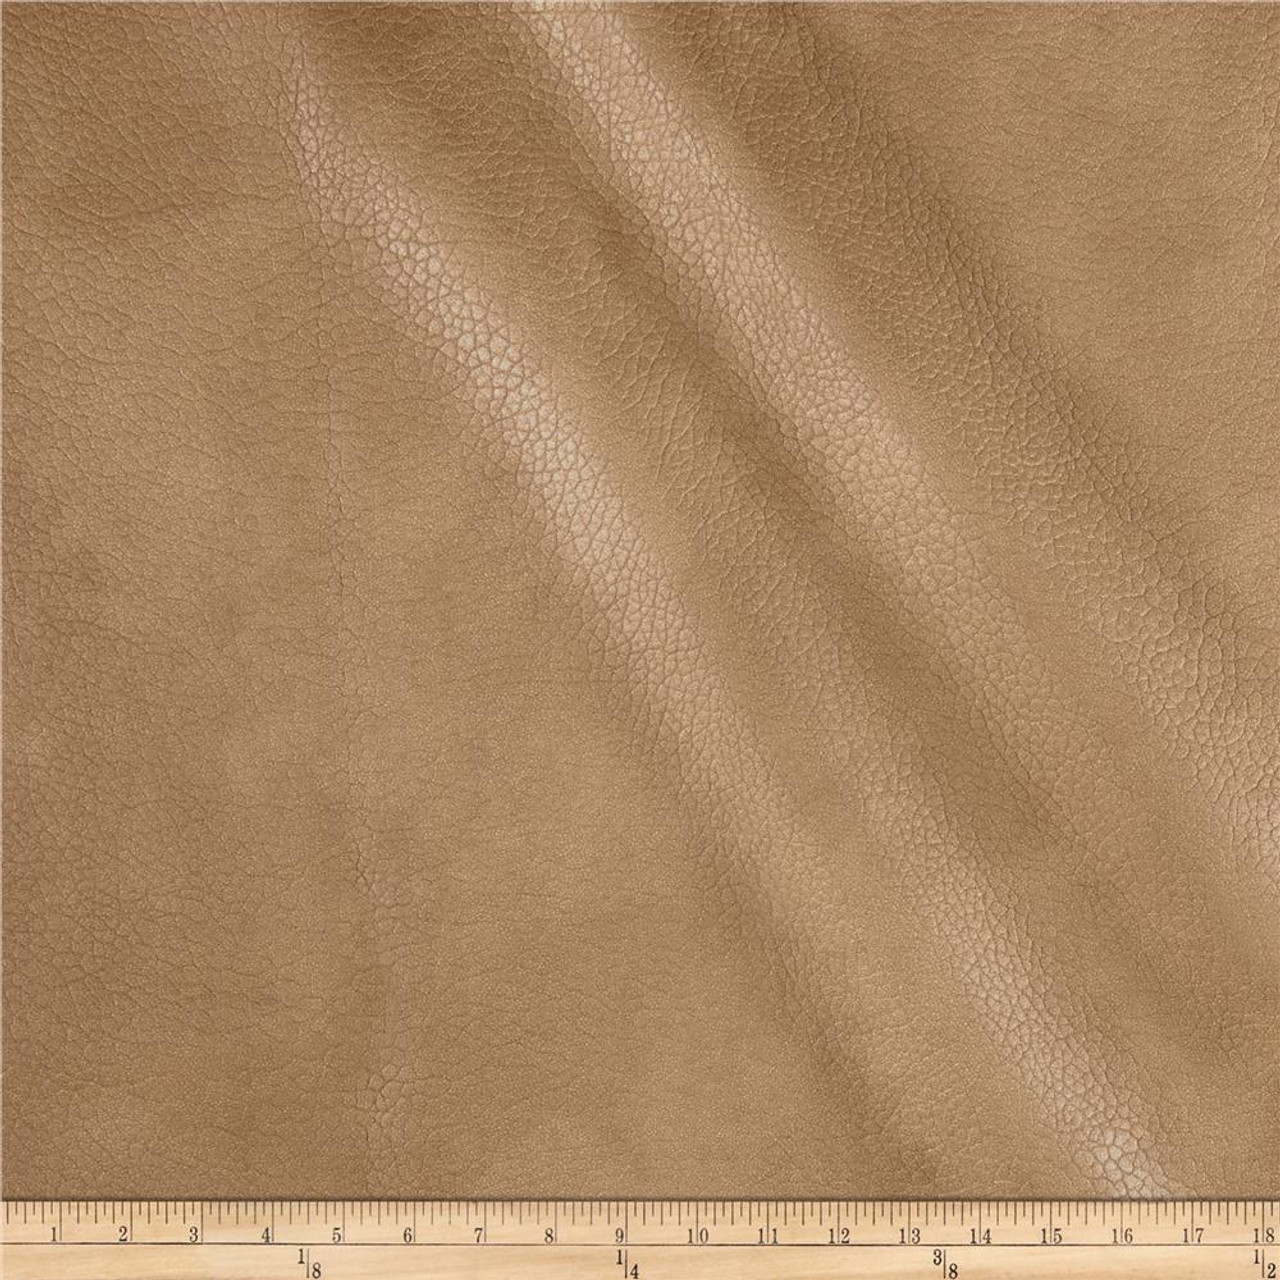 """Camel Tan Faux Leather Vinyl Fabric Pleather 10 Yards Car Upholstery 54/"""" Wide"""